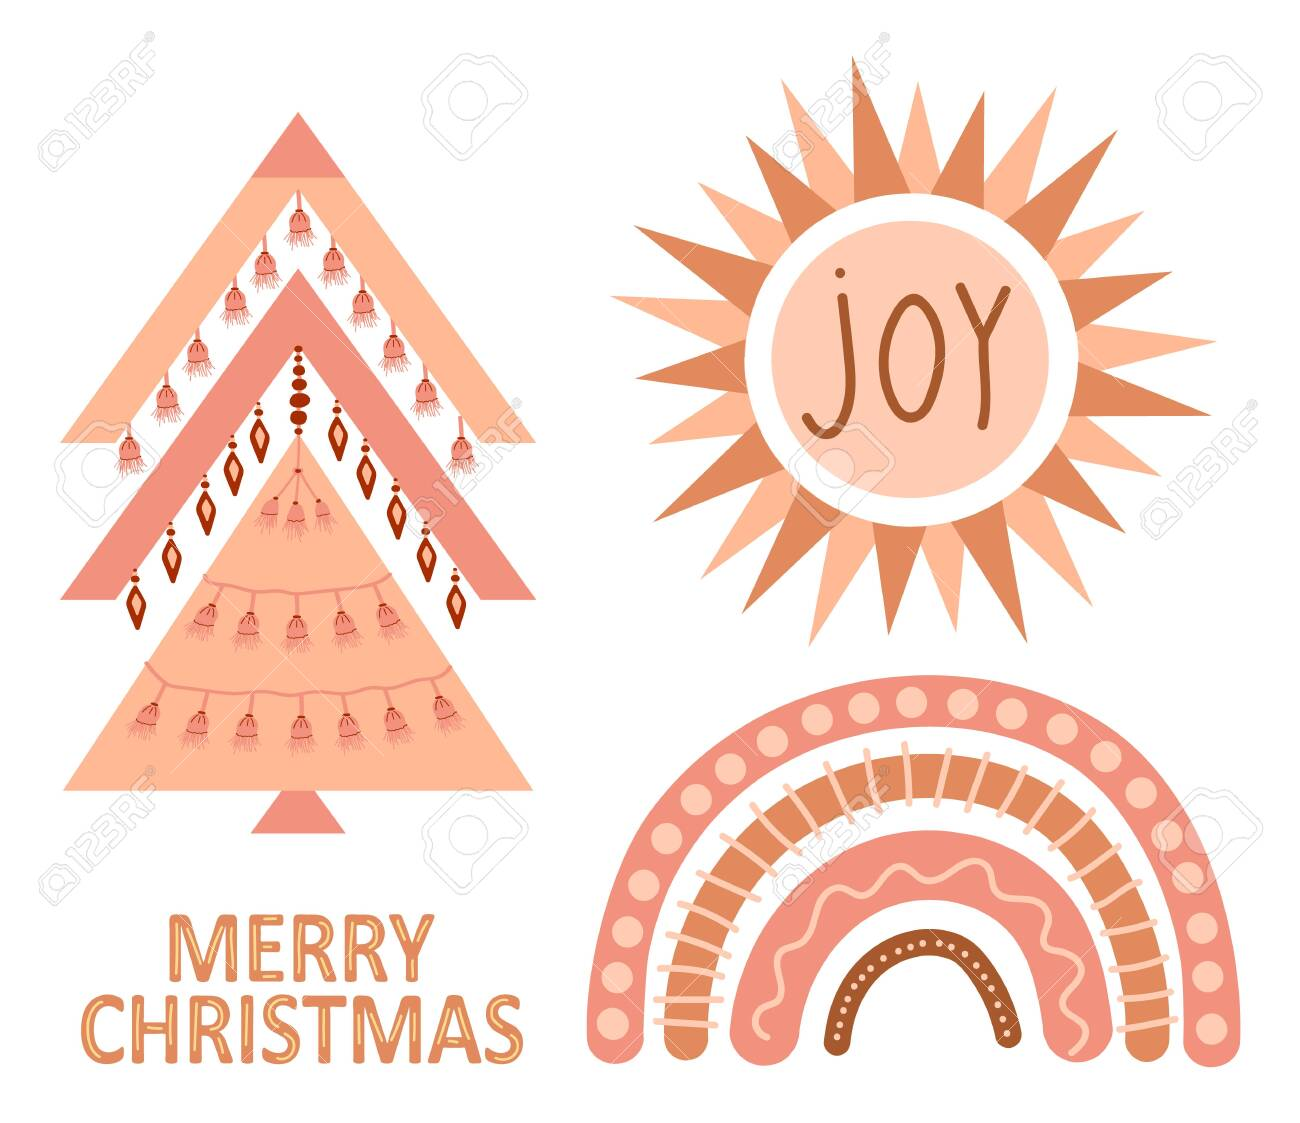 Geometric Christmas Tree With Ethnic Ornaments And Abstract Boho Royalty Free Cliparts Vectors And Stock Illustration Image 156776580